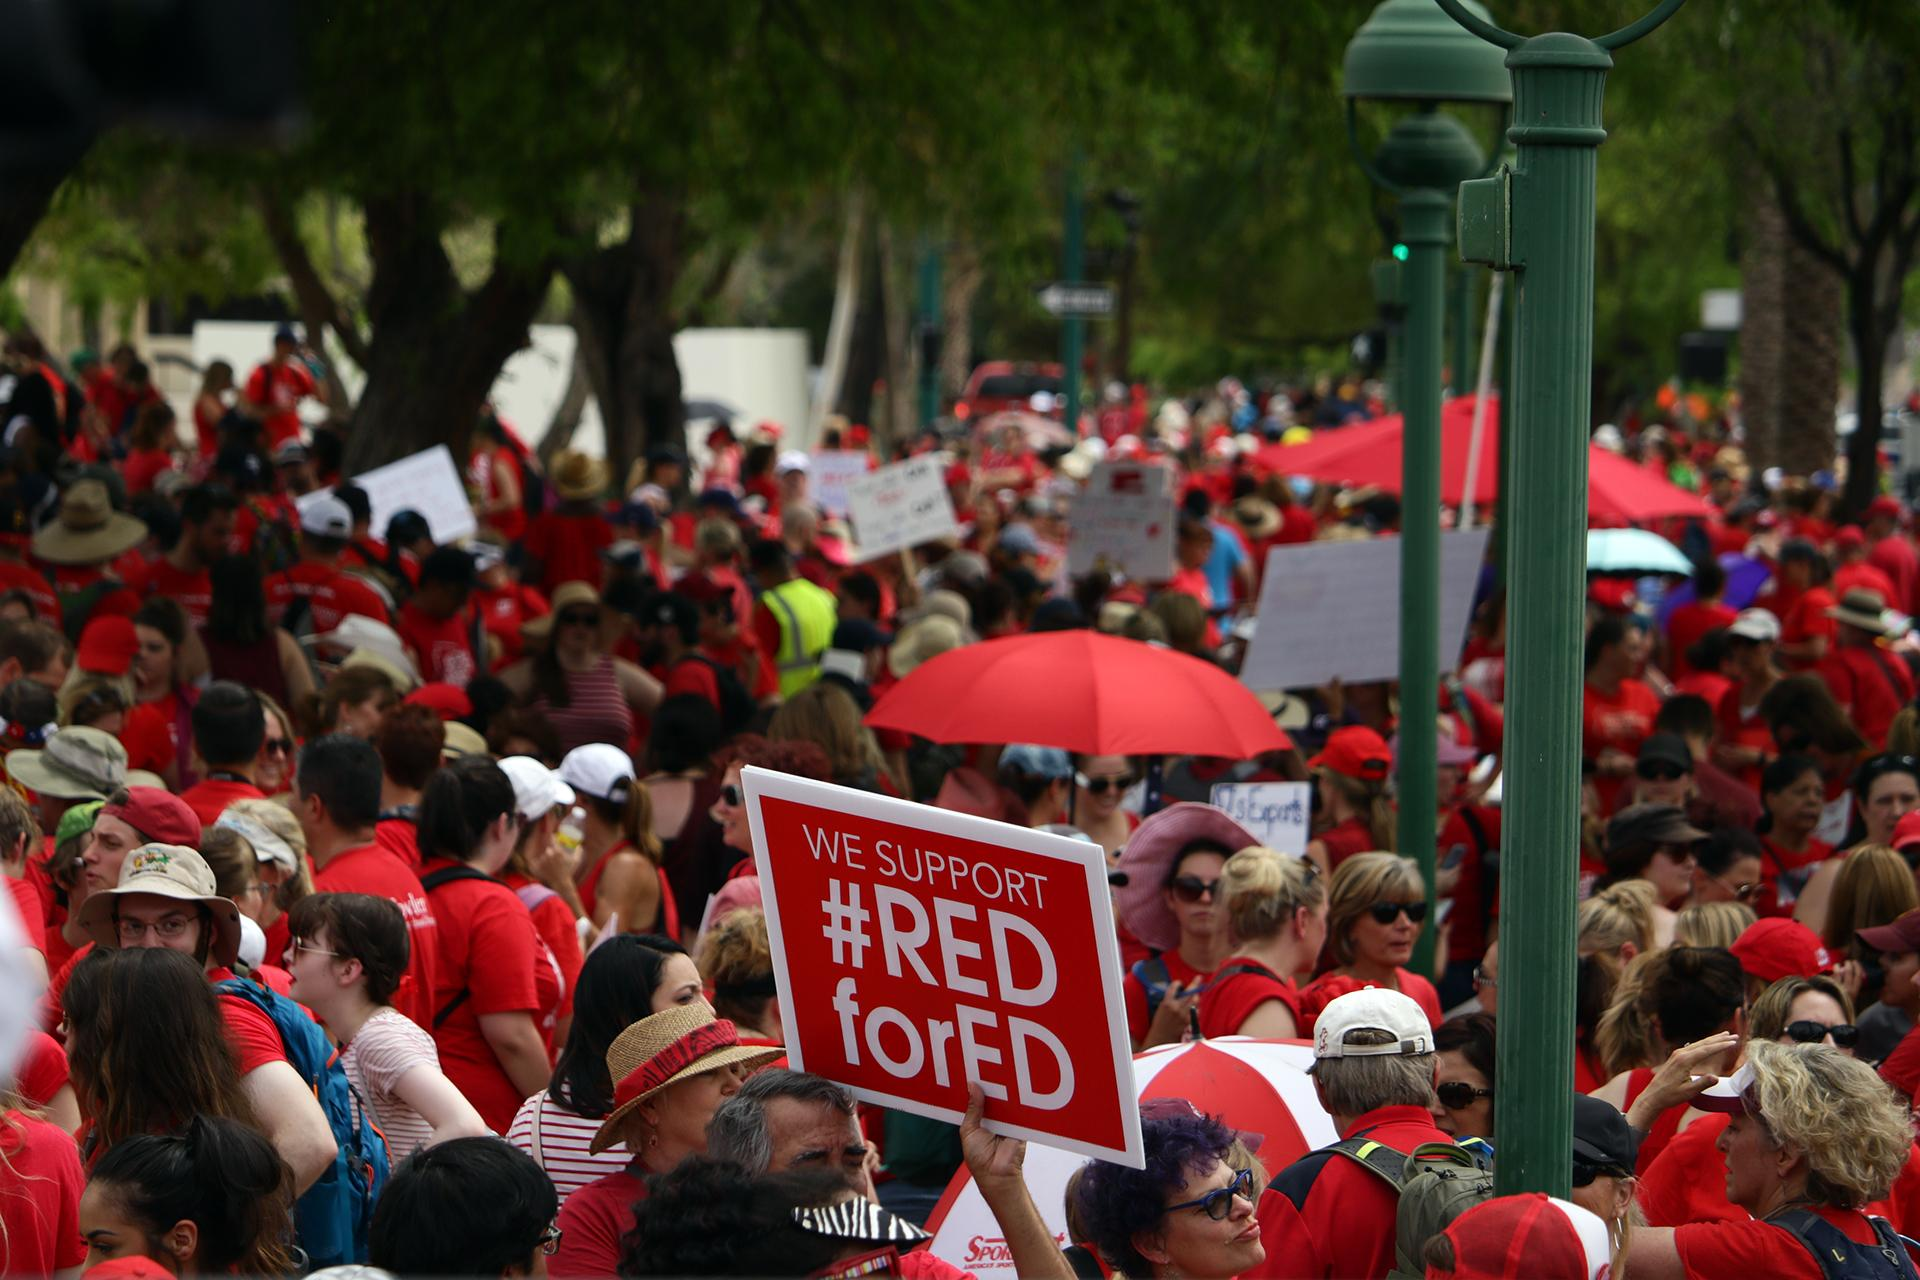 RedForEd rally